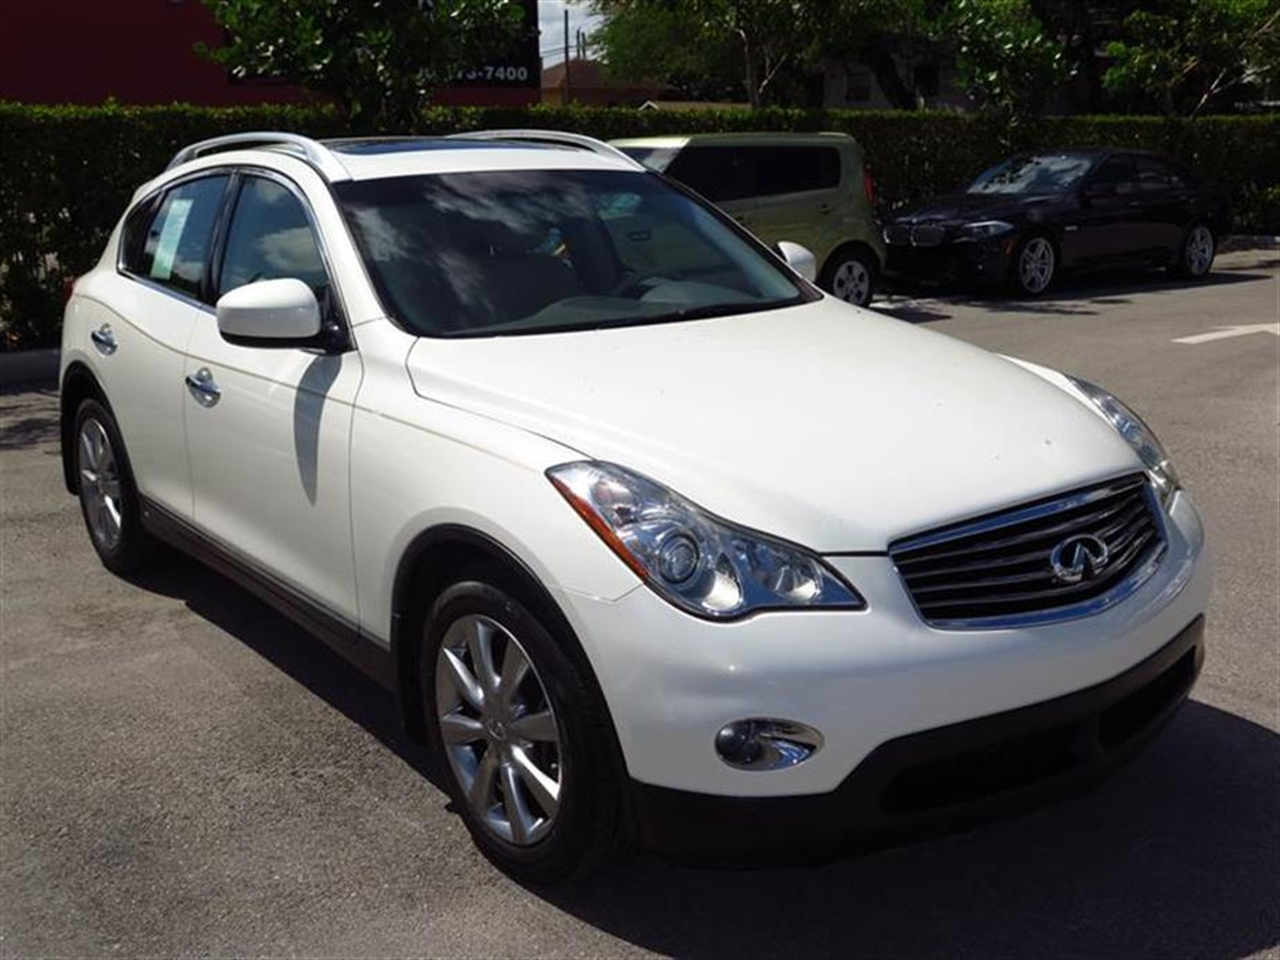 2008 INFINITI EX35 RWD 4dr Journey 40976 miles 2 auxiliary 12V pwr outlets 2 front console c